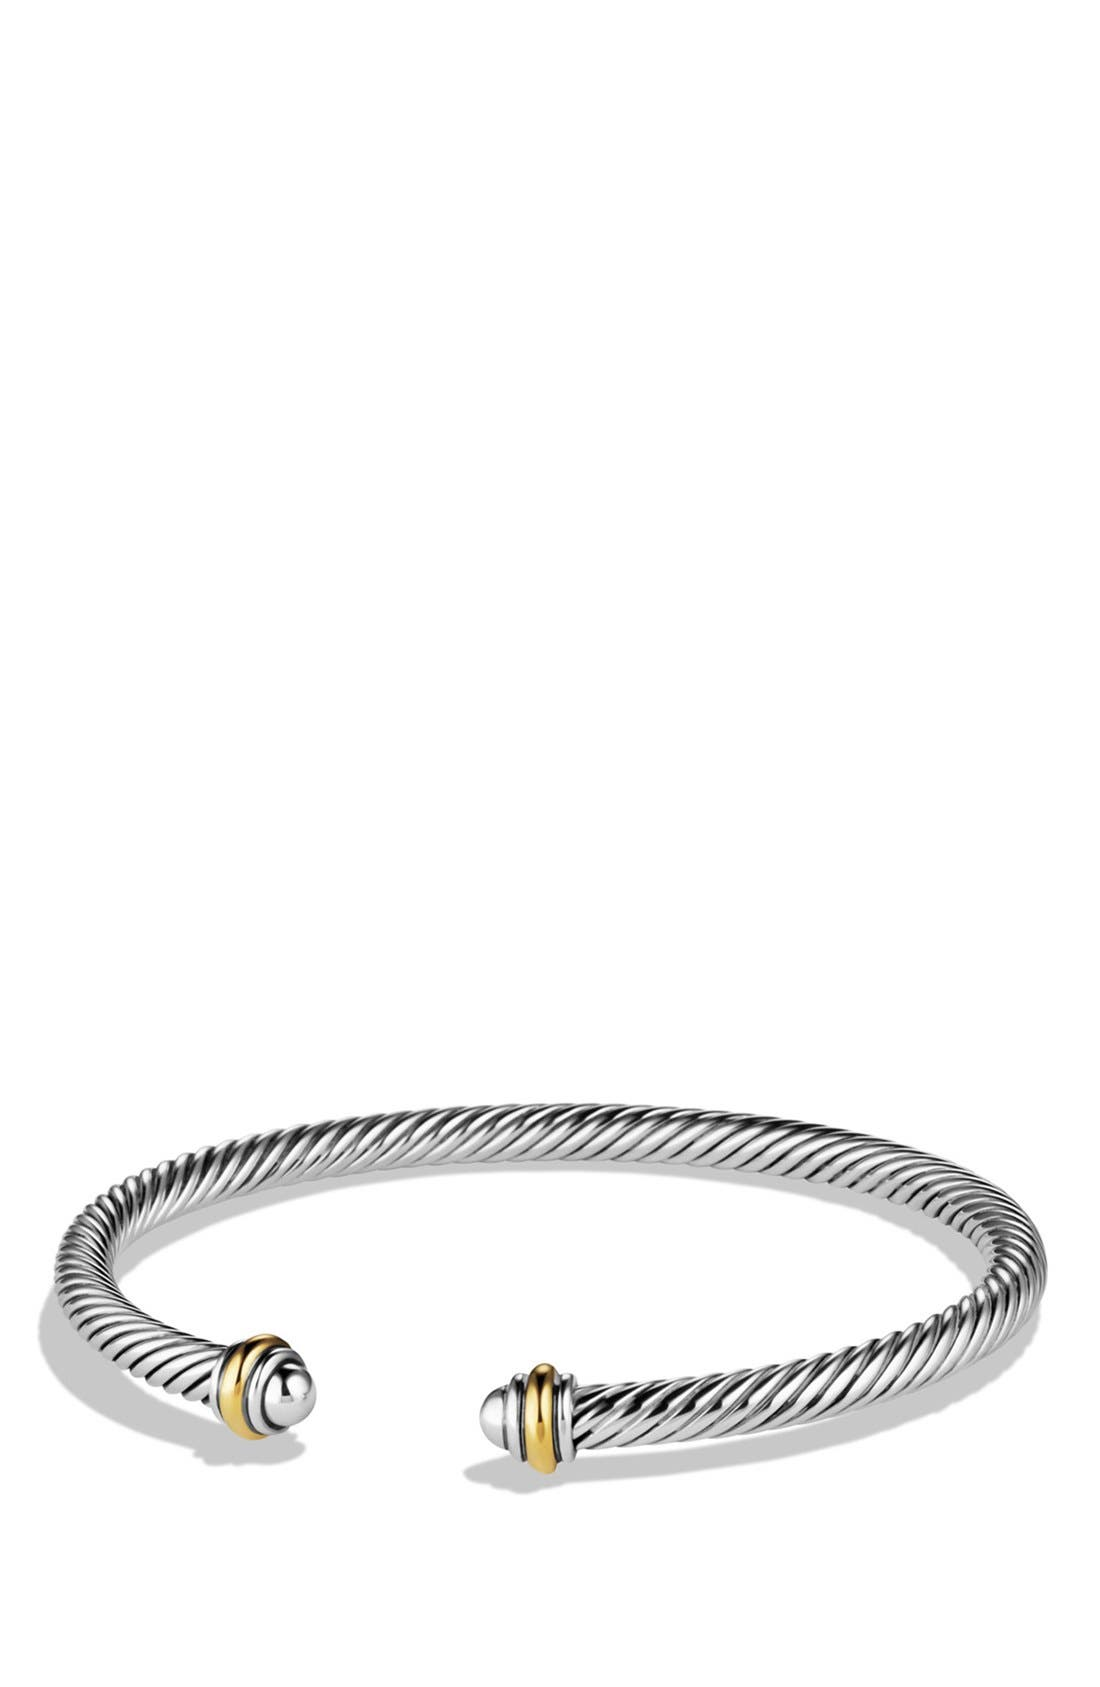 Cable Classics Bracelet with 18K Gold, 4mm,                         Main,                         color, Two Tone